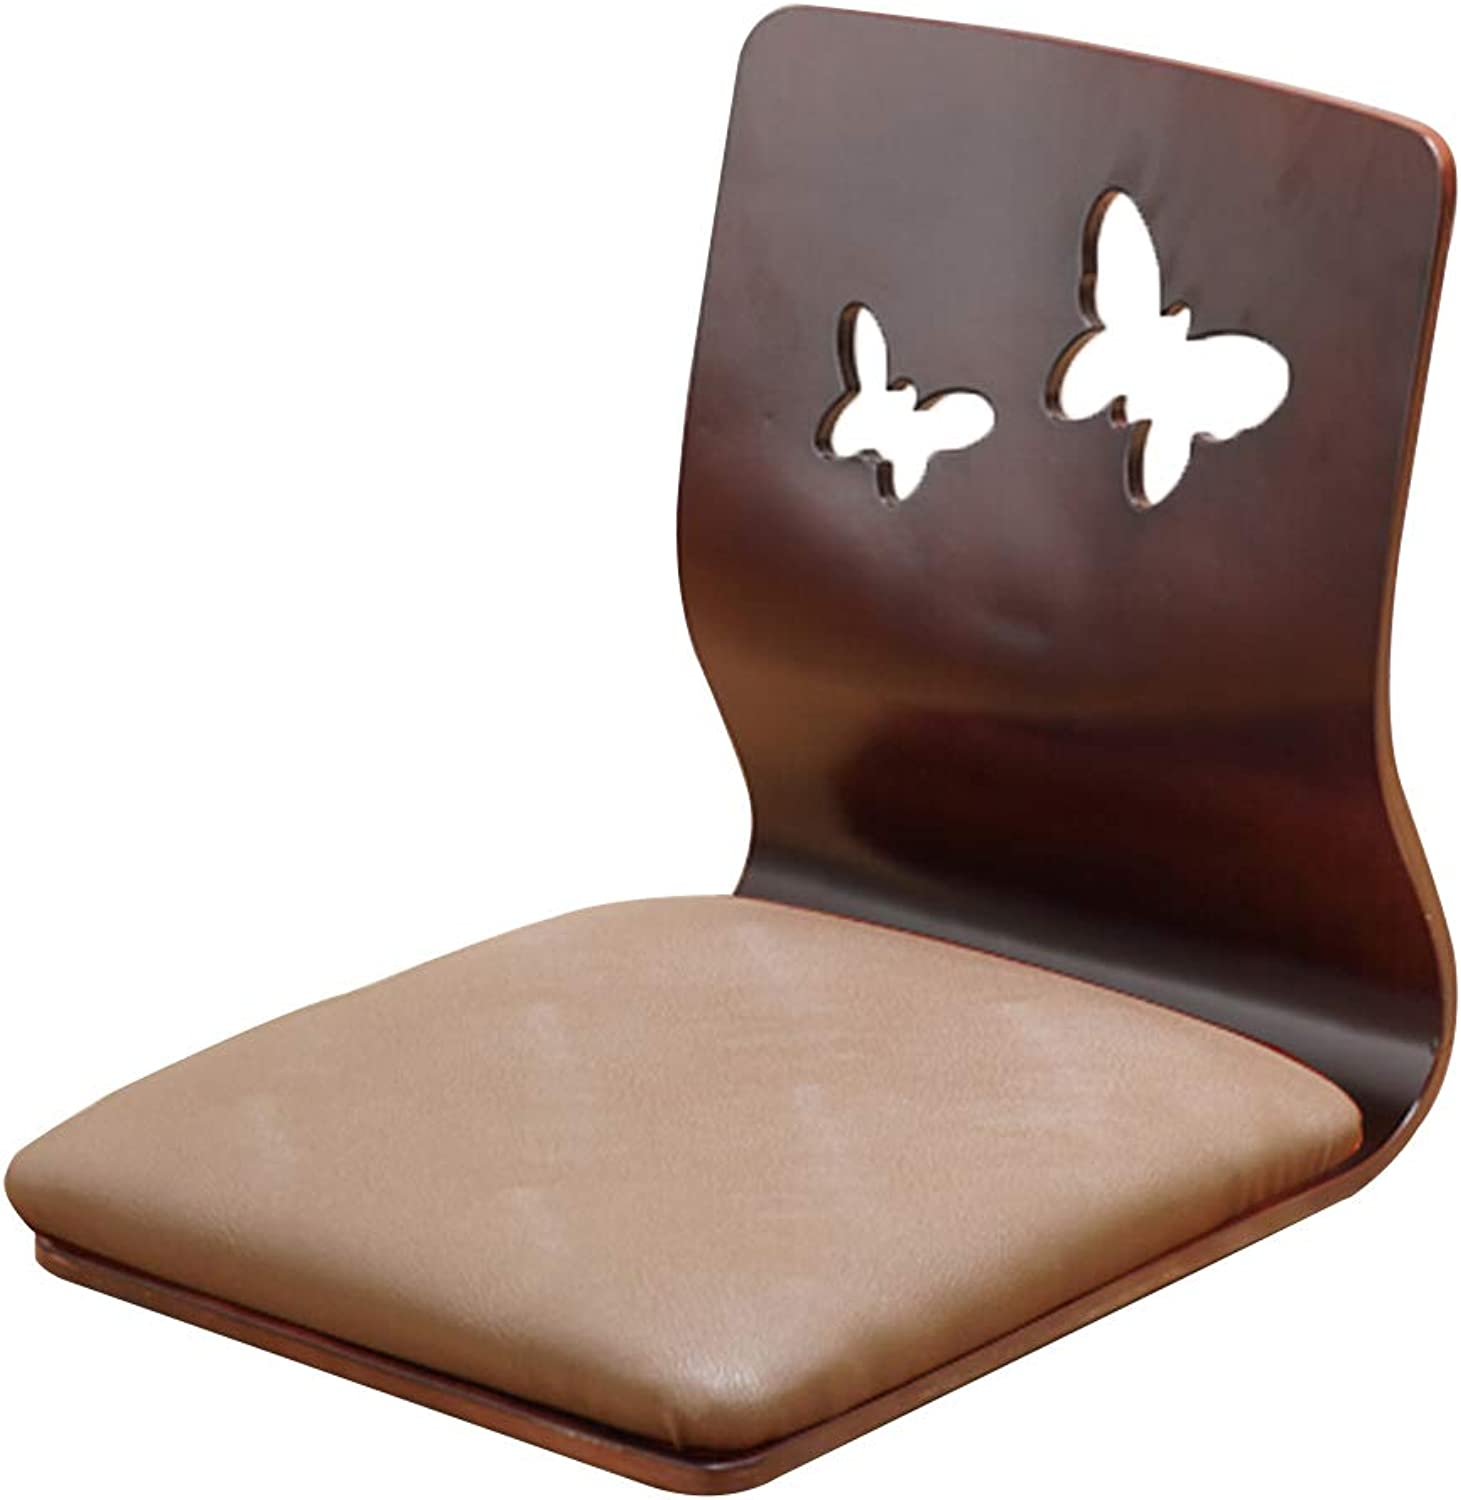 Lazy Sofa Floor Chair, Floor Seating Bed Gaming Chair Meditation Chair Bed Dormitory Computer Backrest Solid Wood Chair (color   Brown)